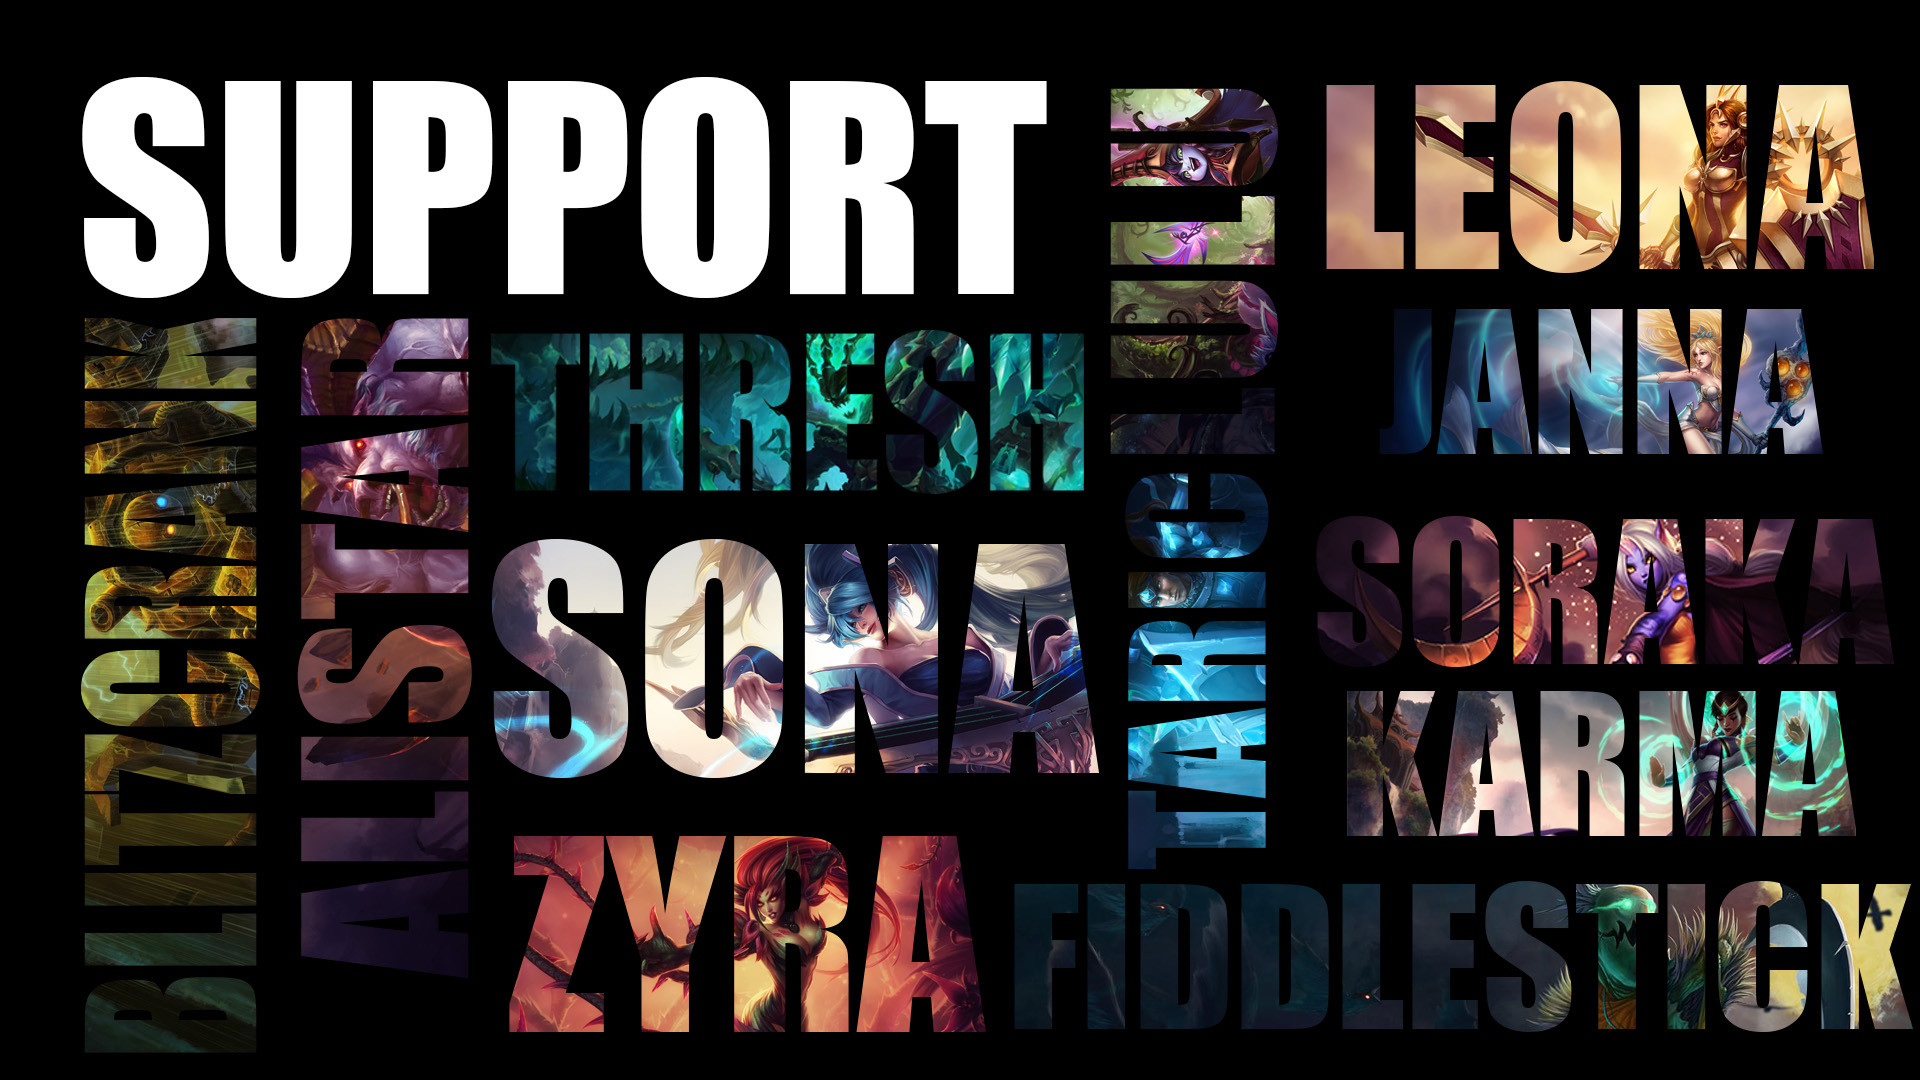 Supporter Wallpaper by laynz